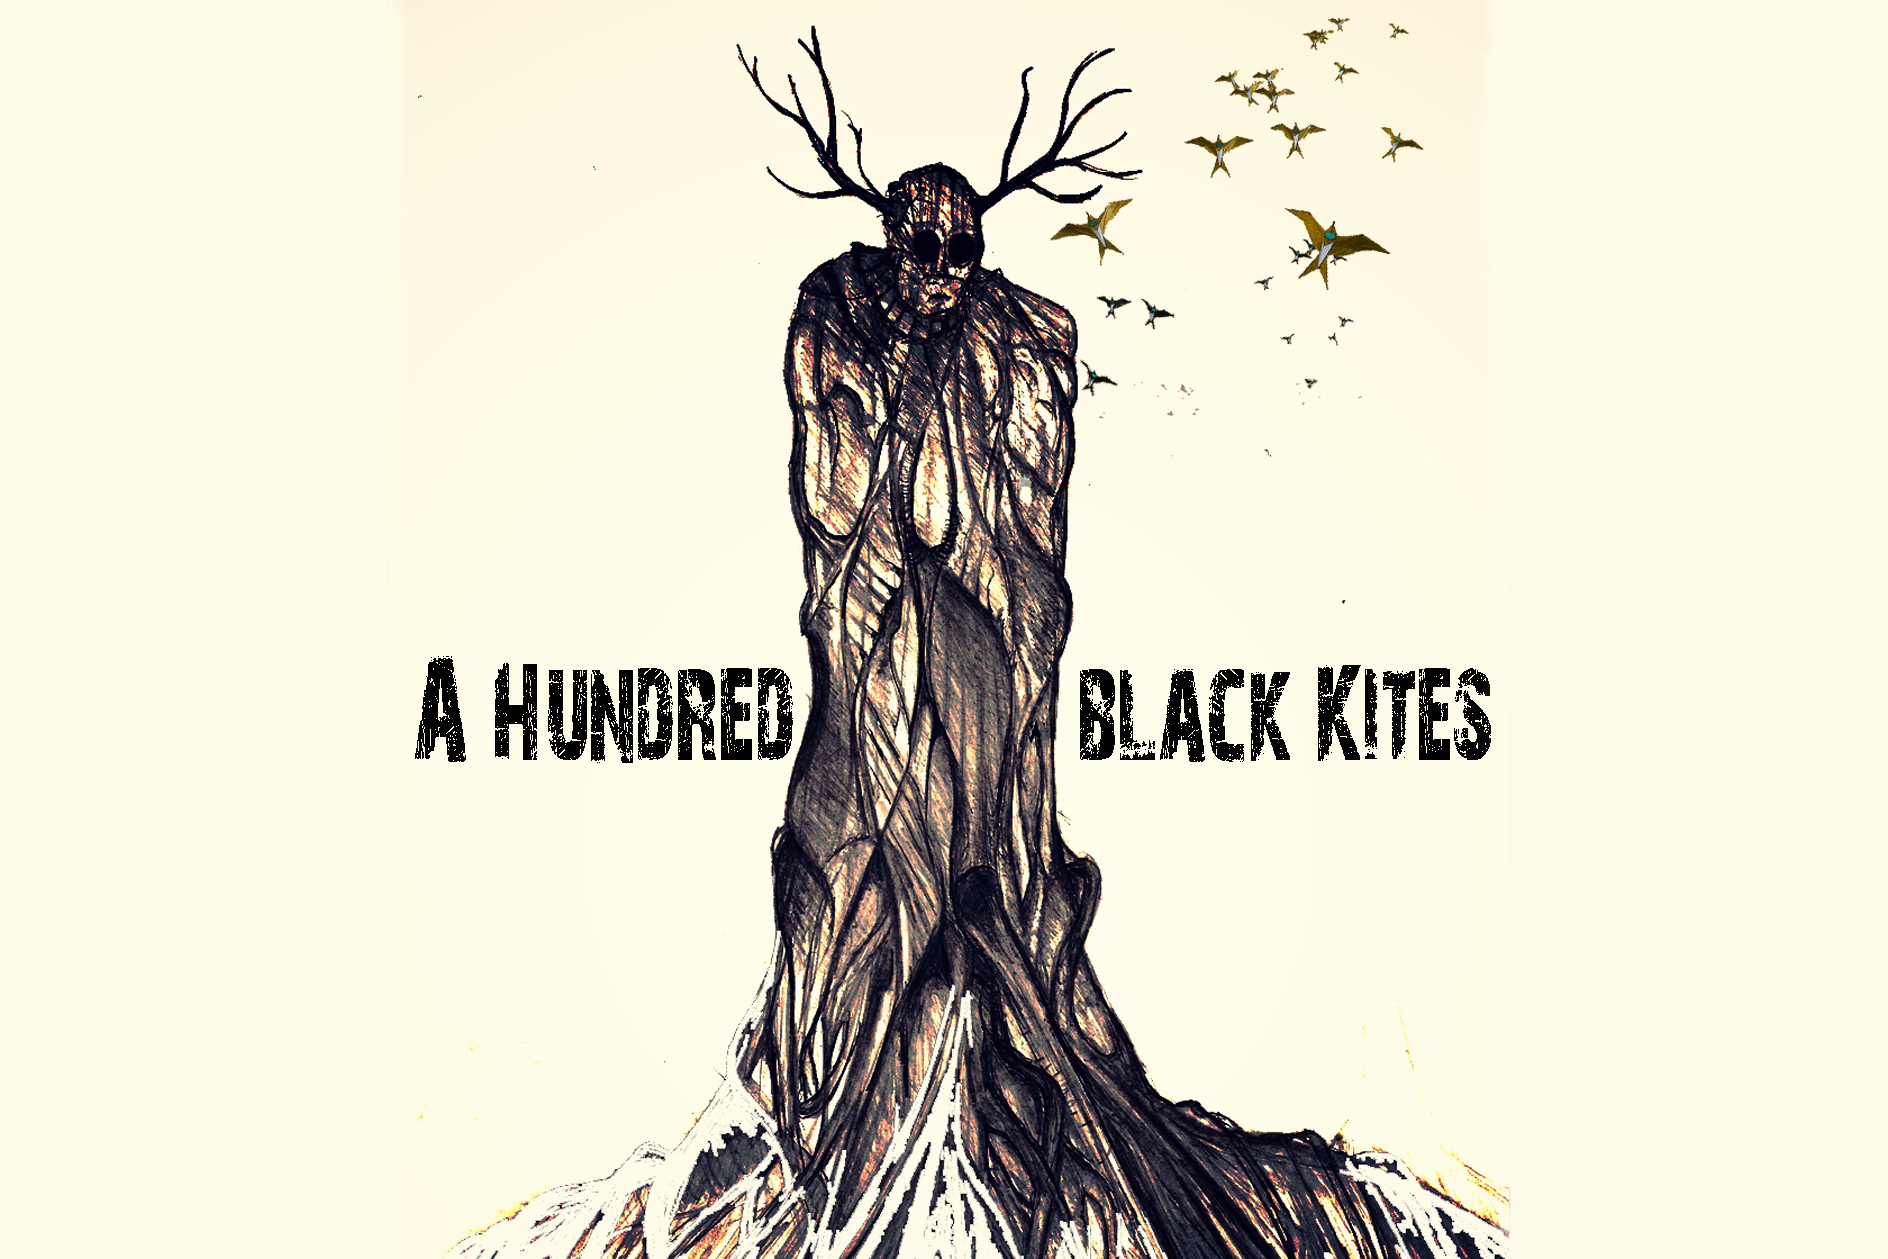 a-hundred-black-kites-e-p-cover-jpg_effected